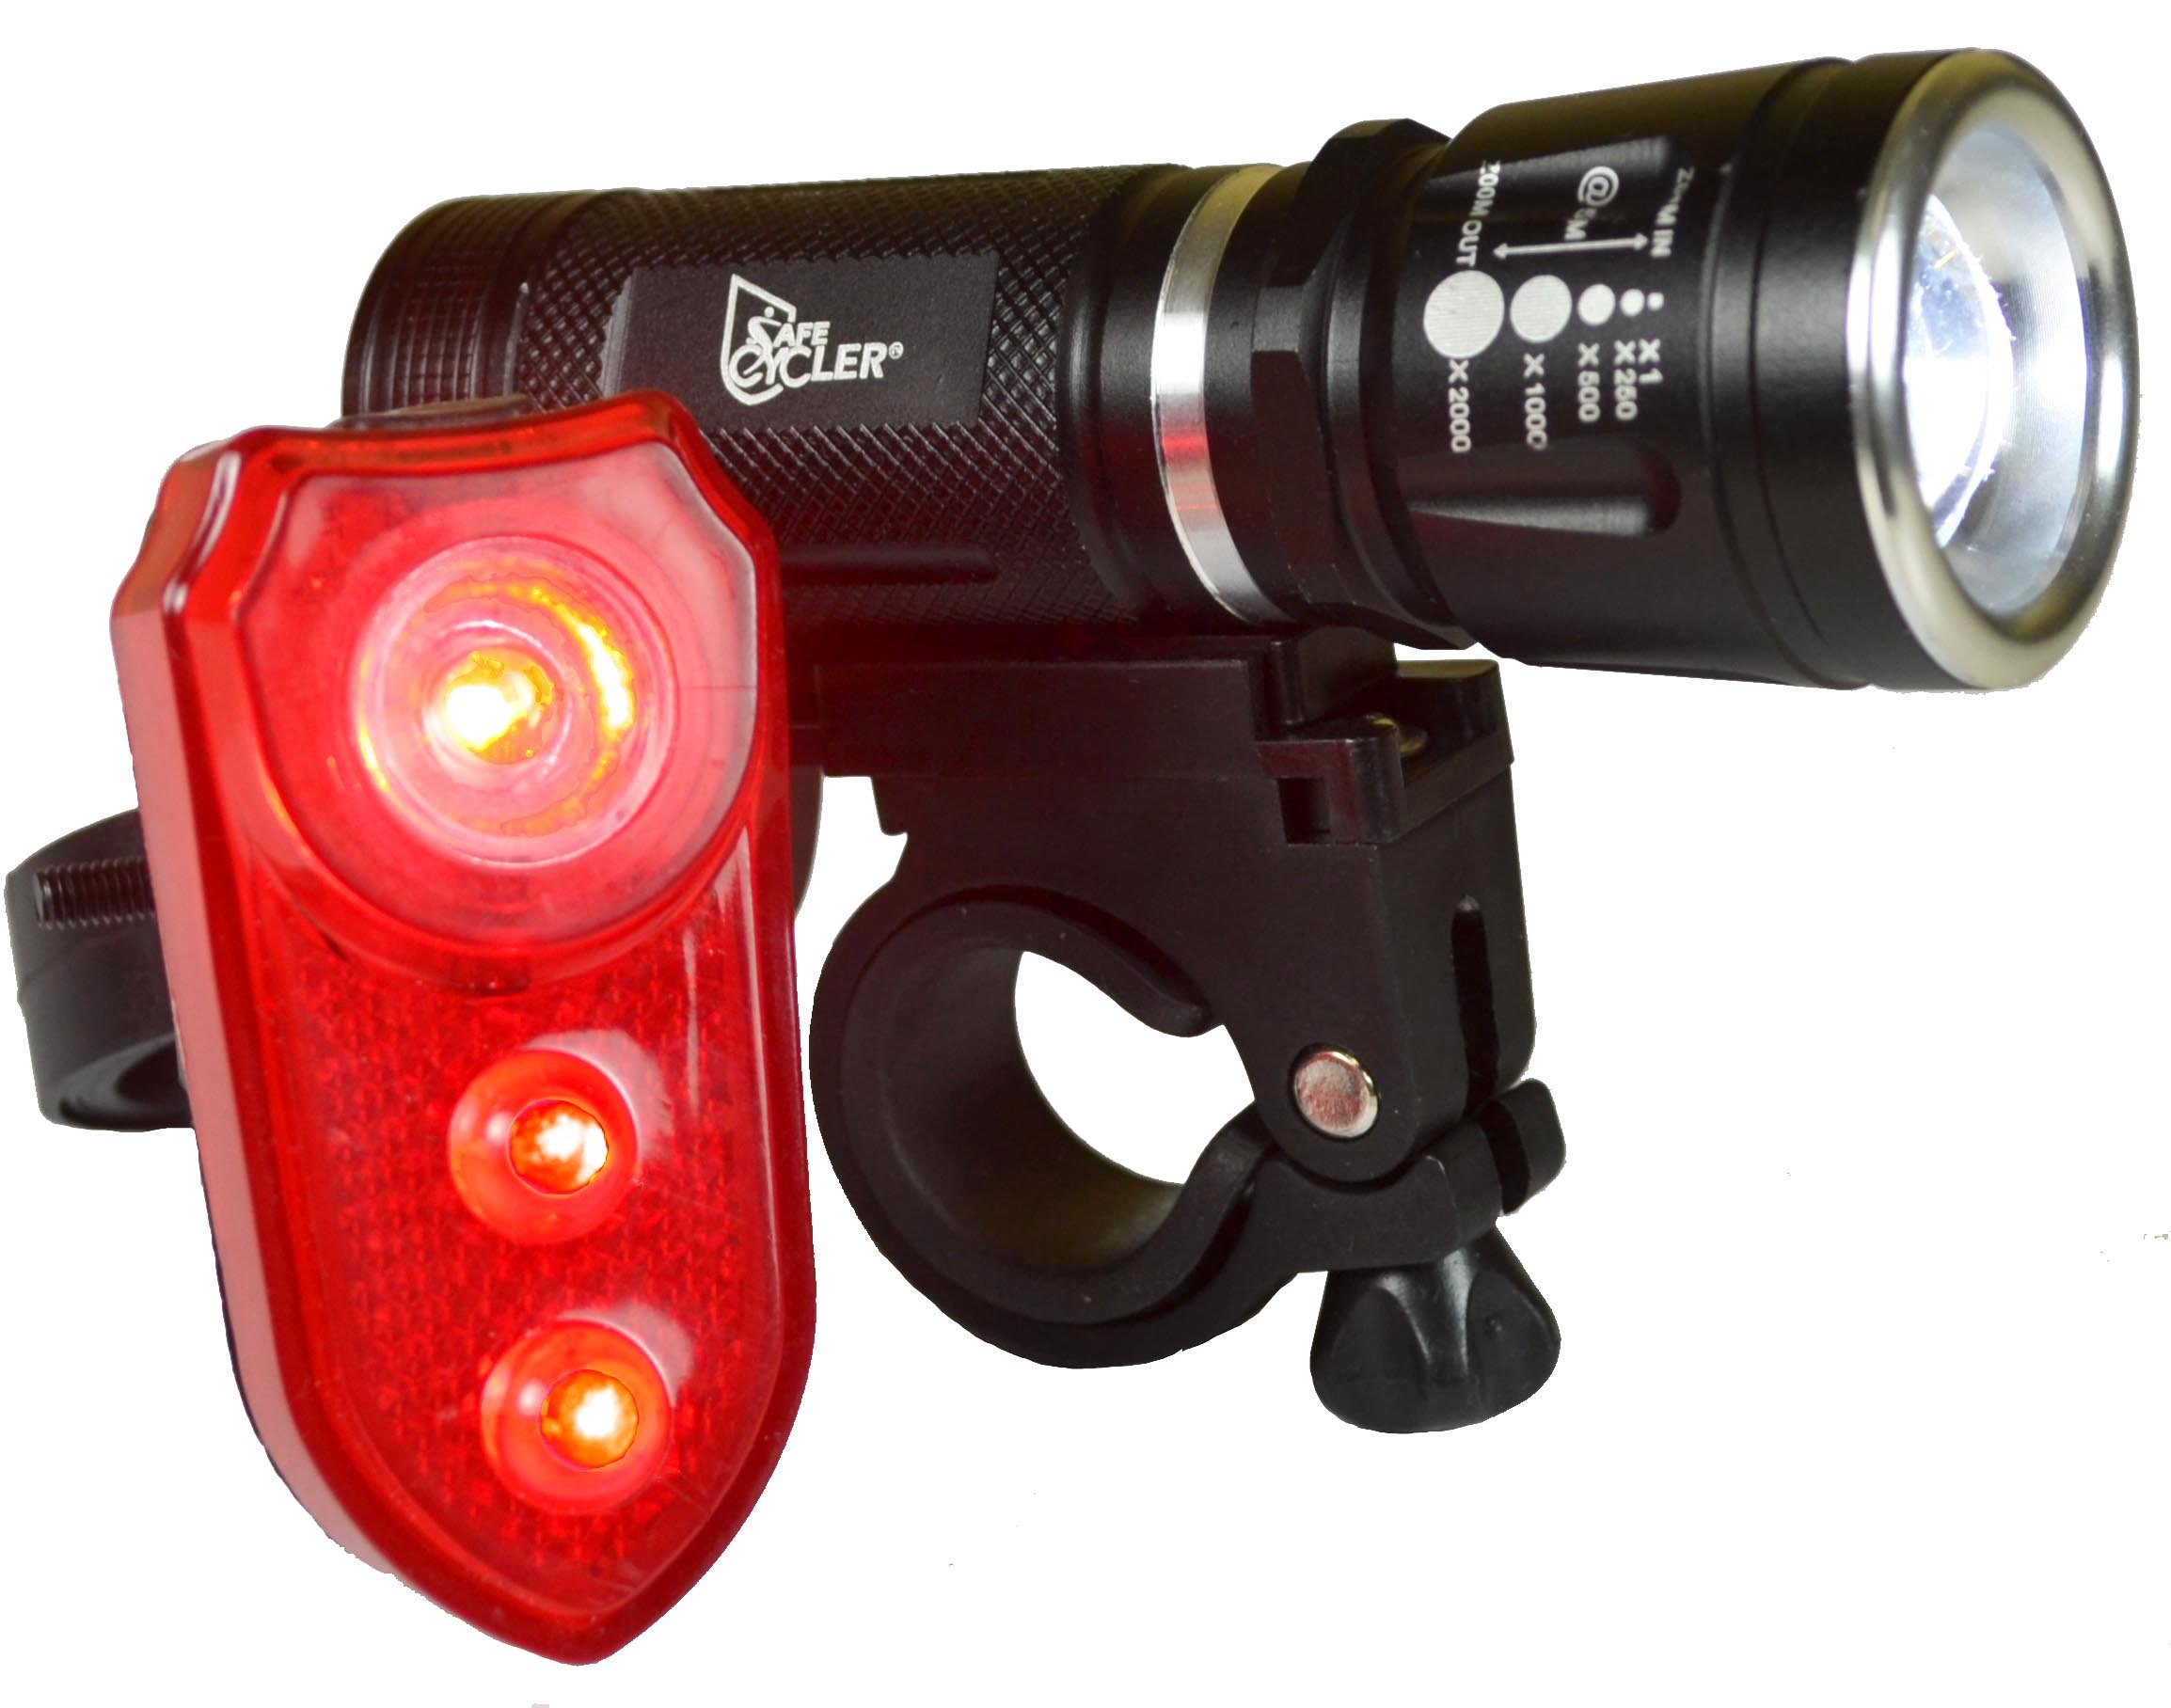 SafeCycler LED BIKE LIGHTS - Super Bright Front And Rear LED Bicycle Light Set for Your Safety